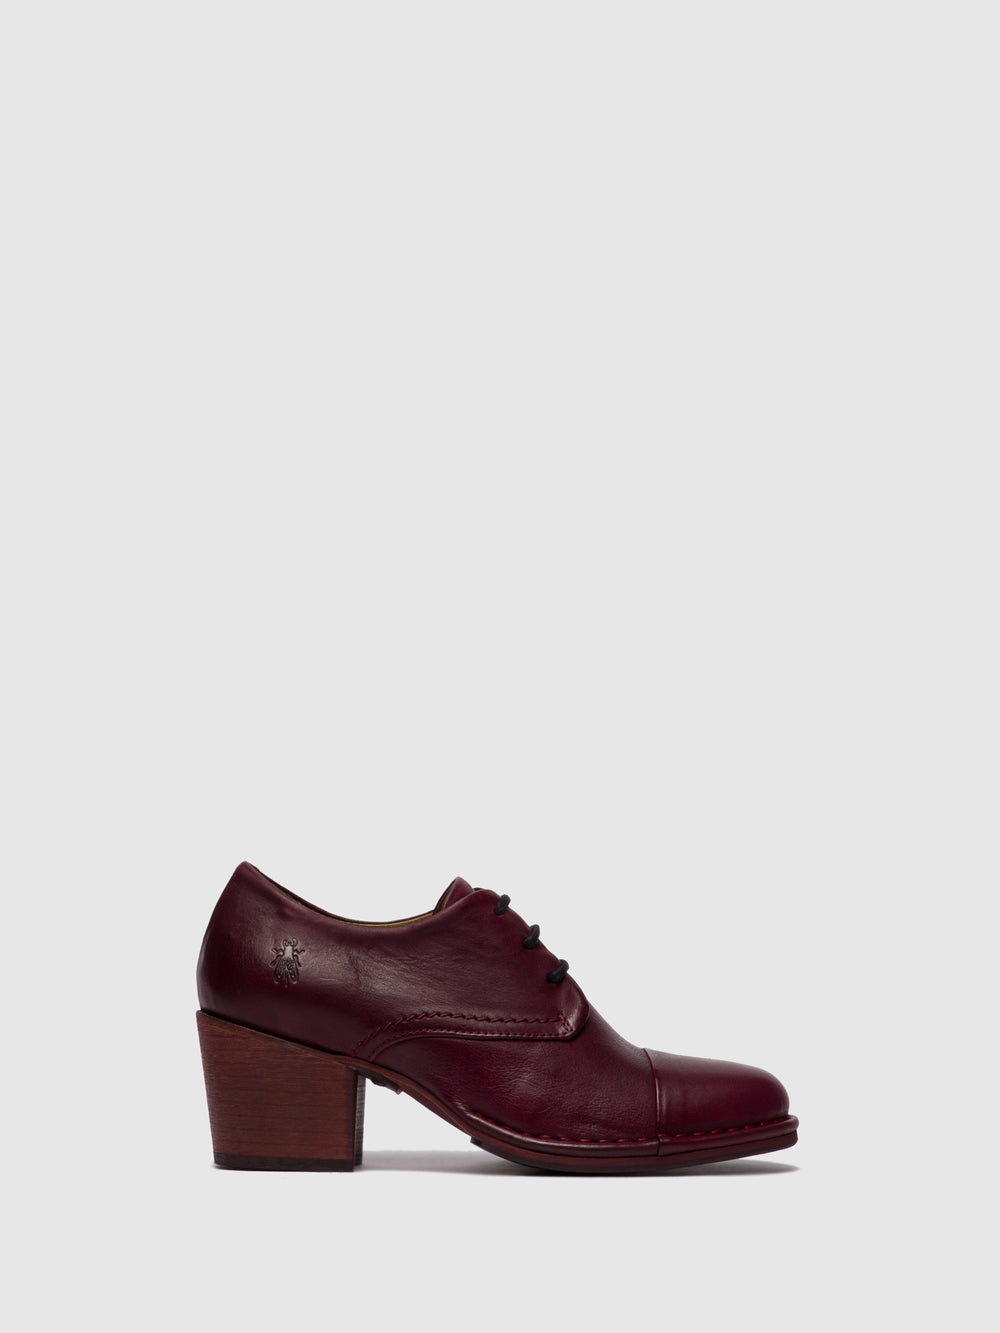 Lace-up Shoes LYNC235FLY VERONA WINE